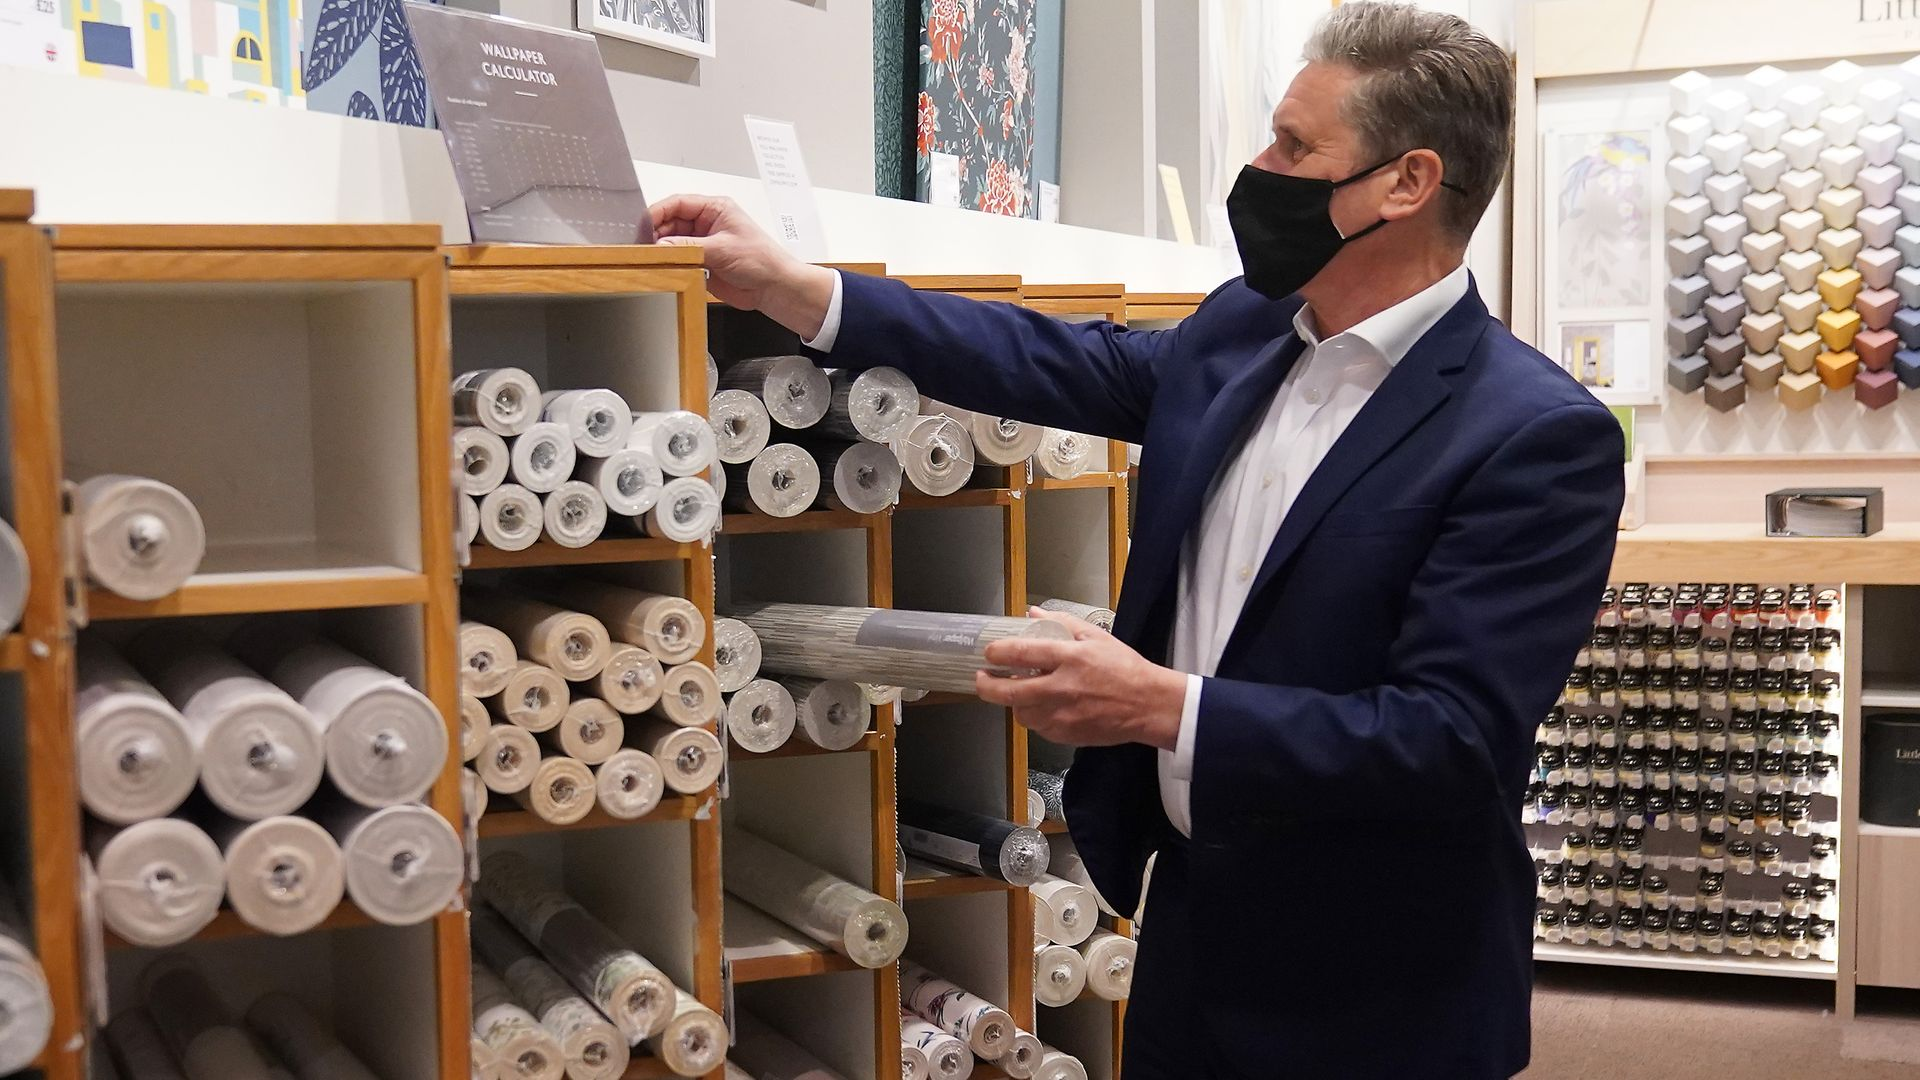 Labour Party leader Sir Keir Starmer browses through the wallpaper section at John Lewis - Credit: PA